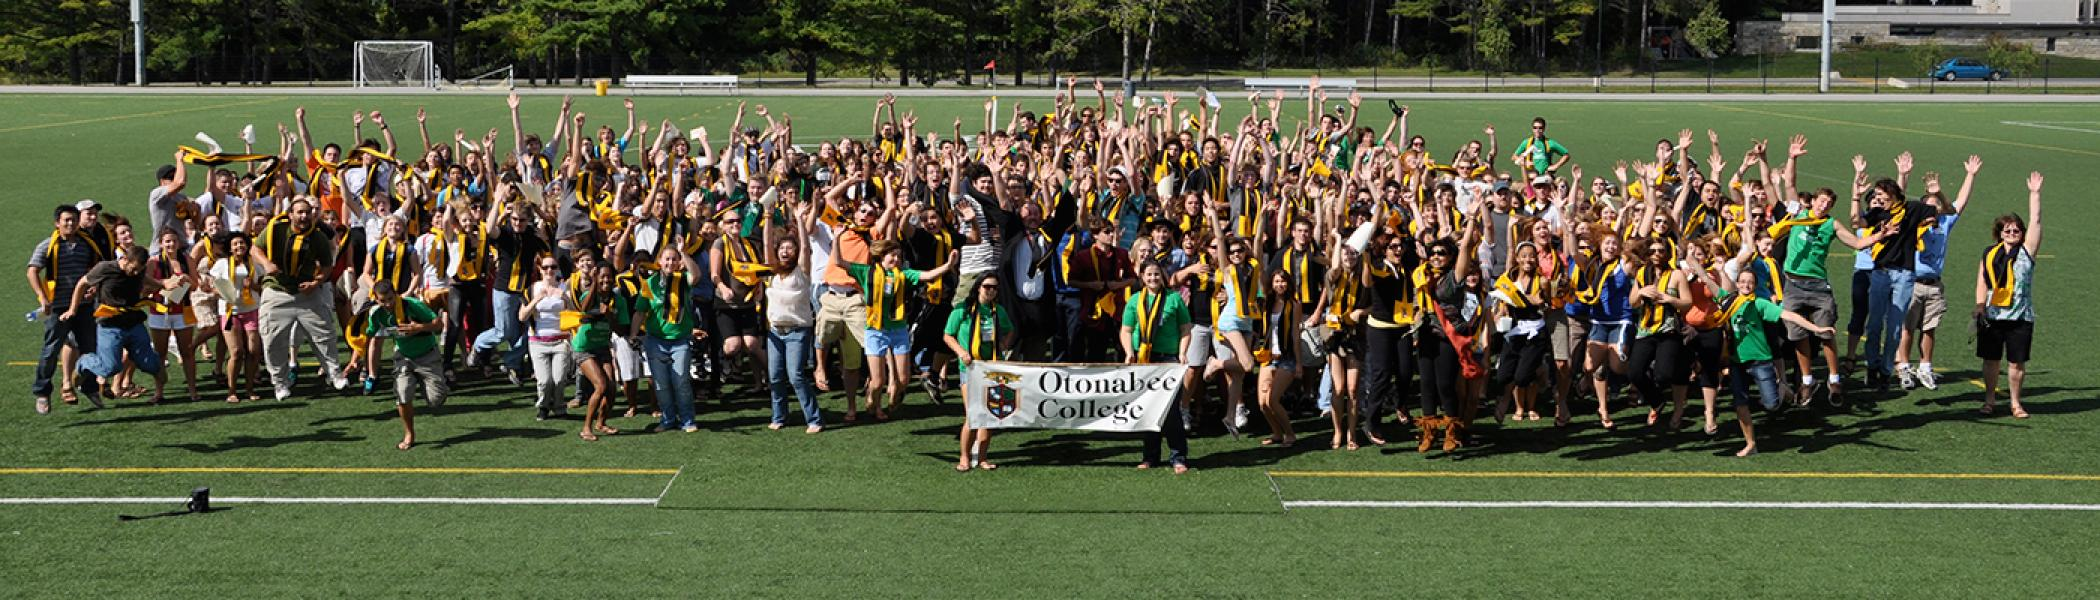 Otonabee college student group on the Justin Chiu stadium field posing together